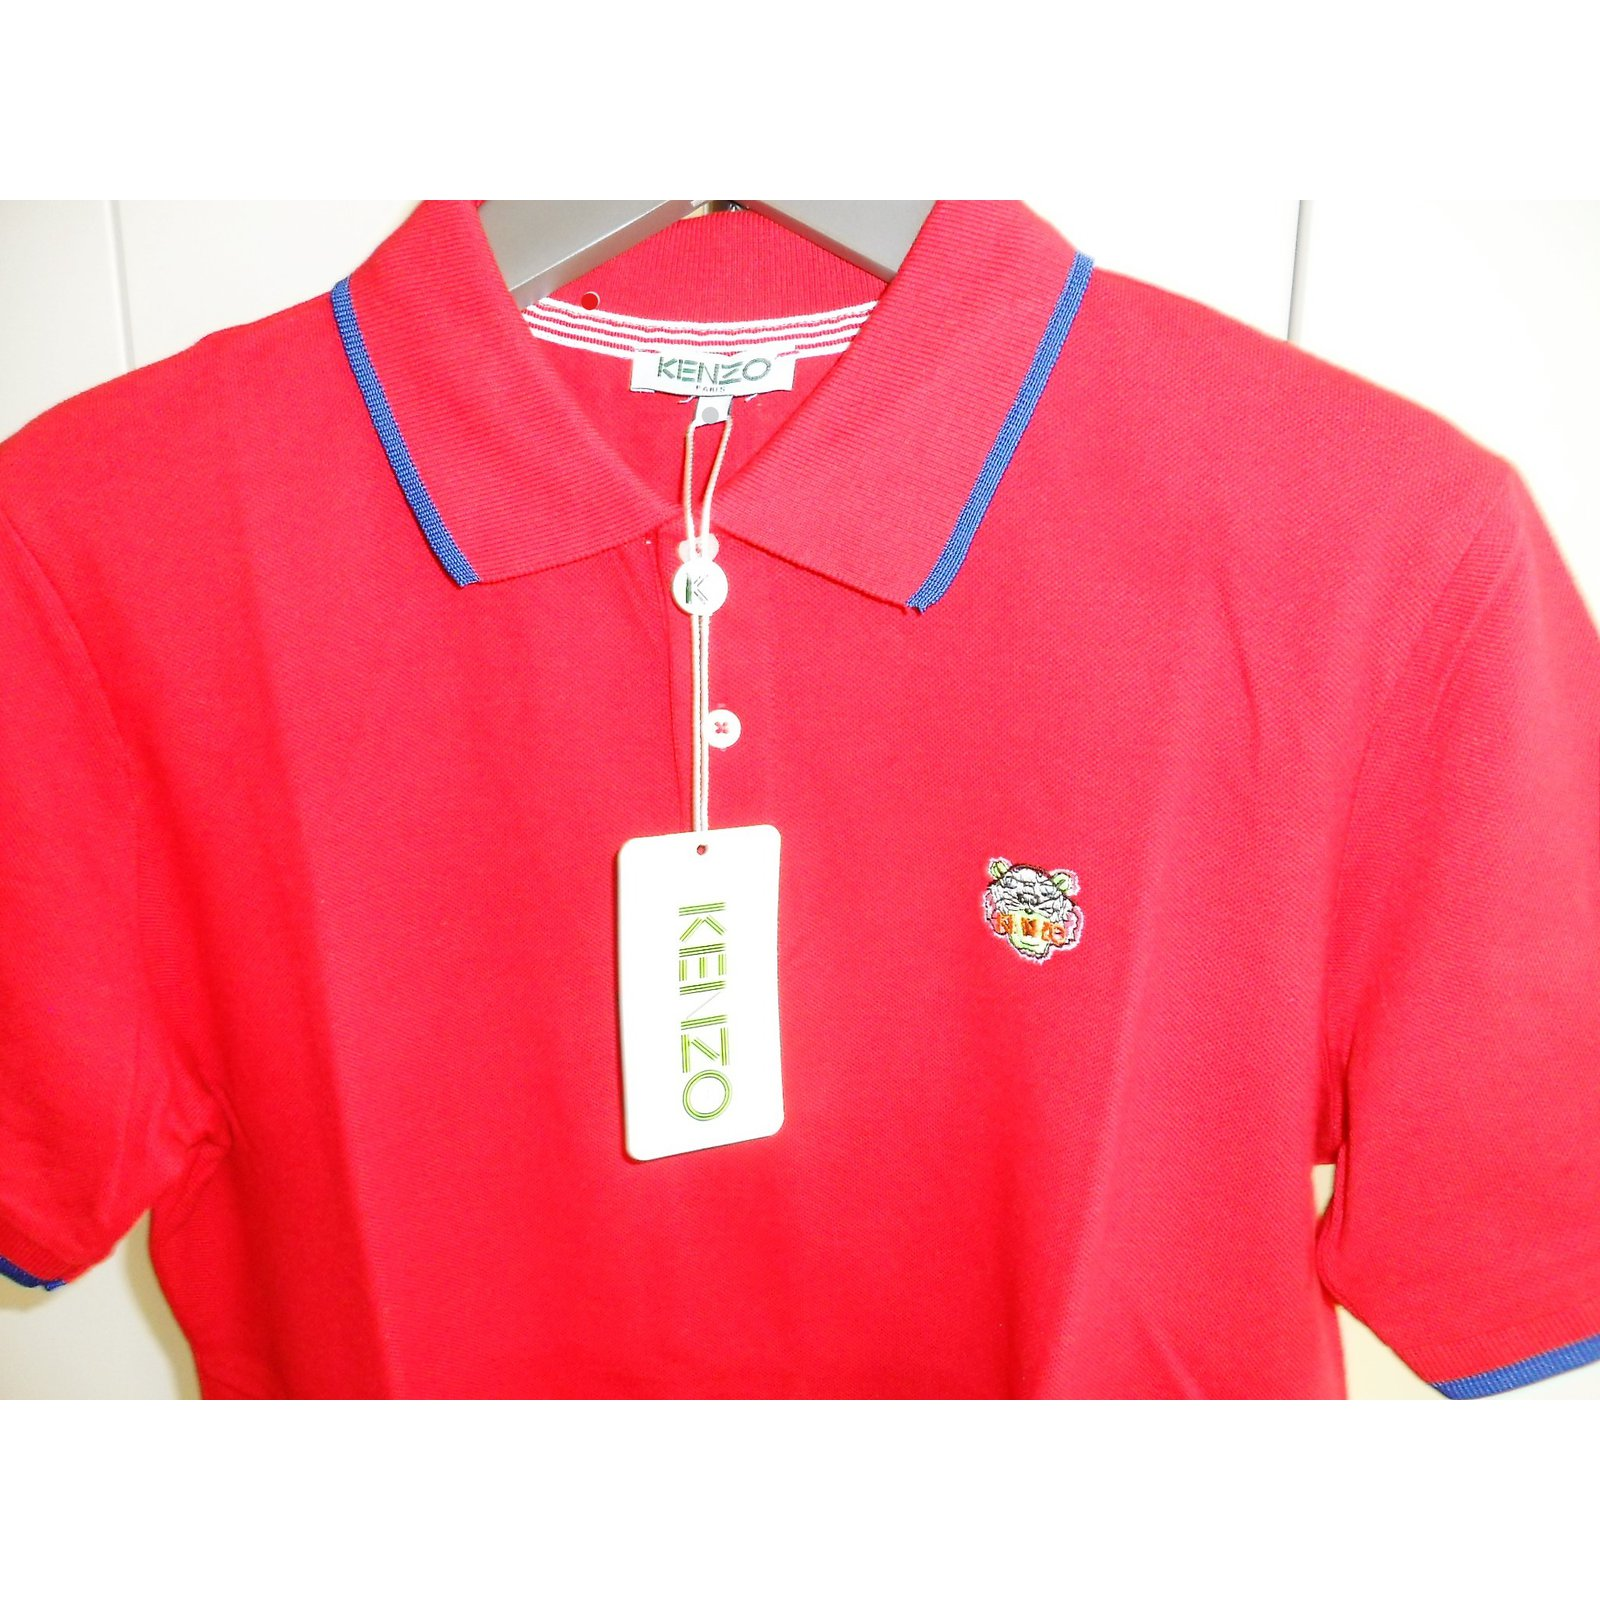 e0627fb1a6 Kenzo new men's polo with tiger logo, red large